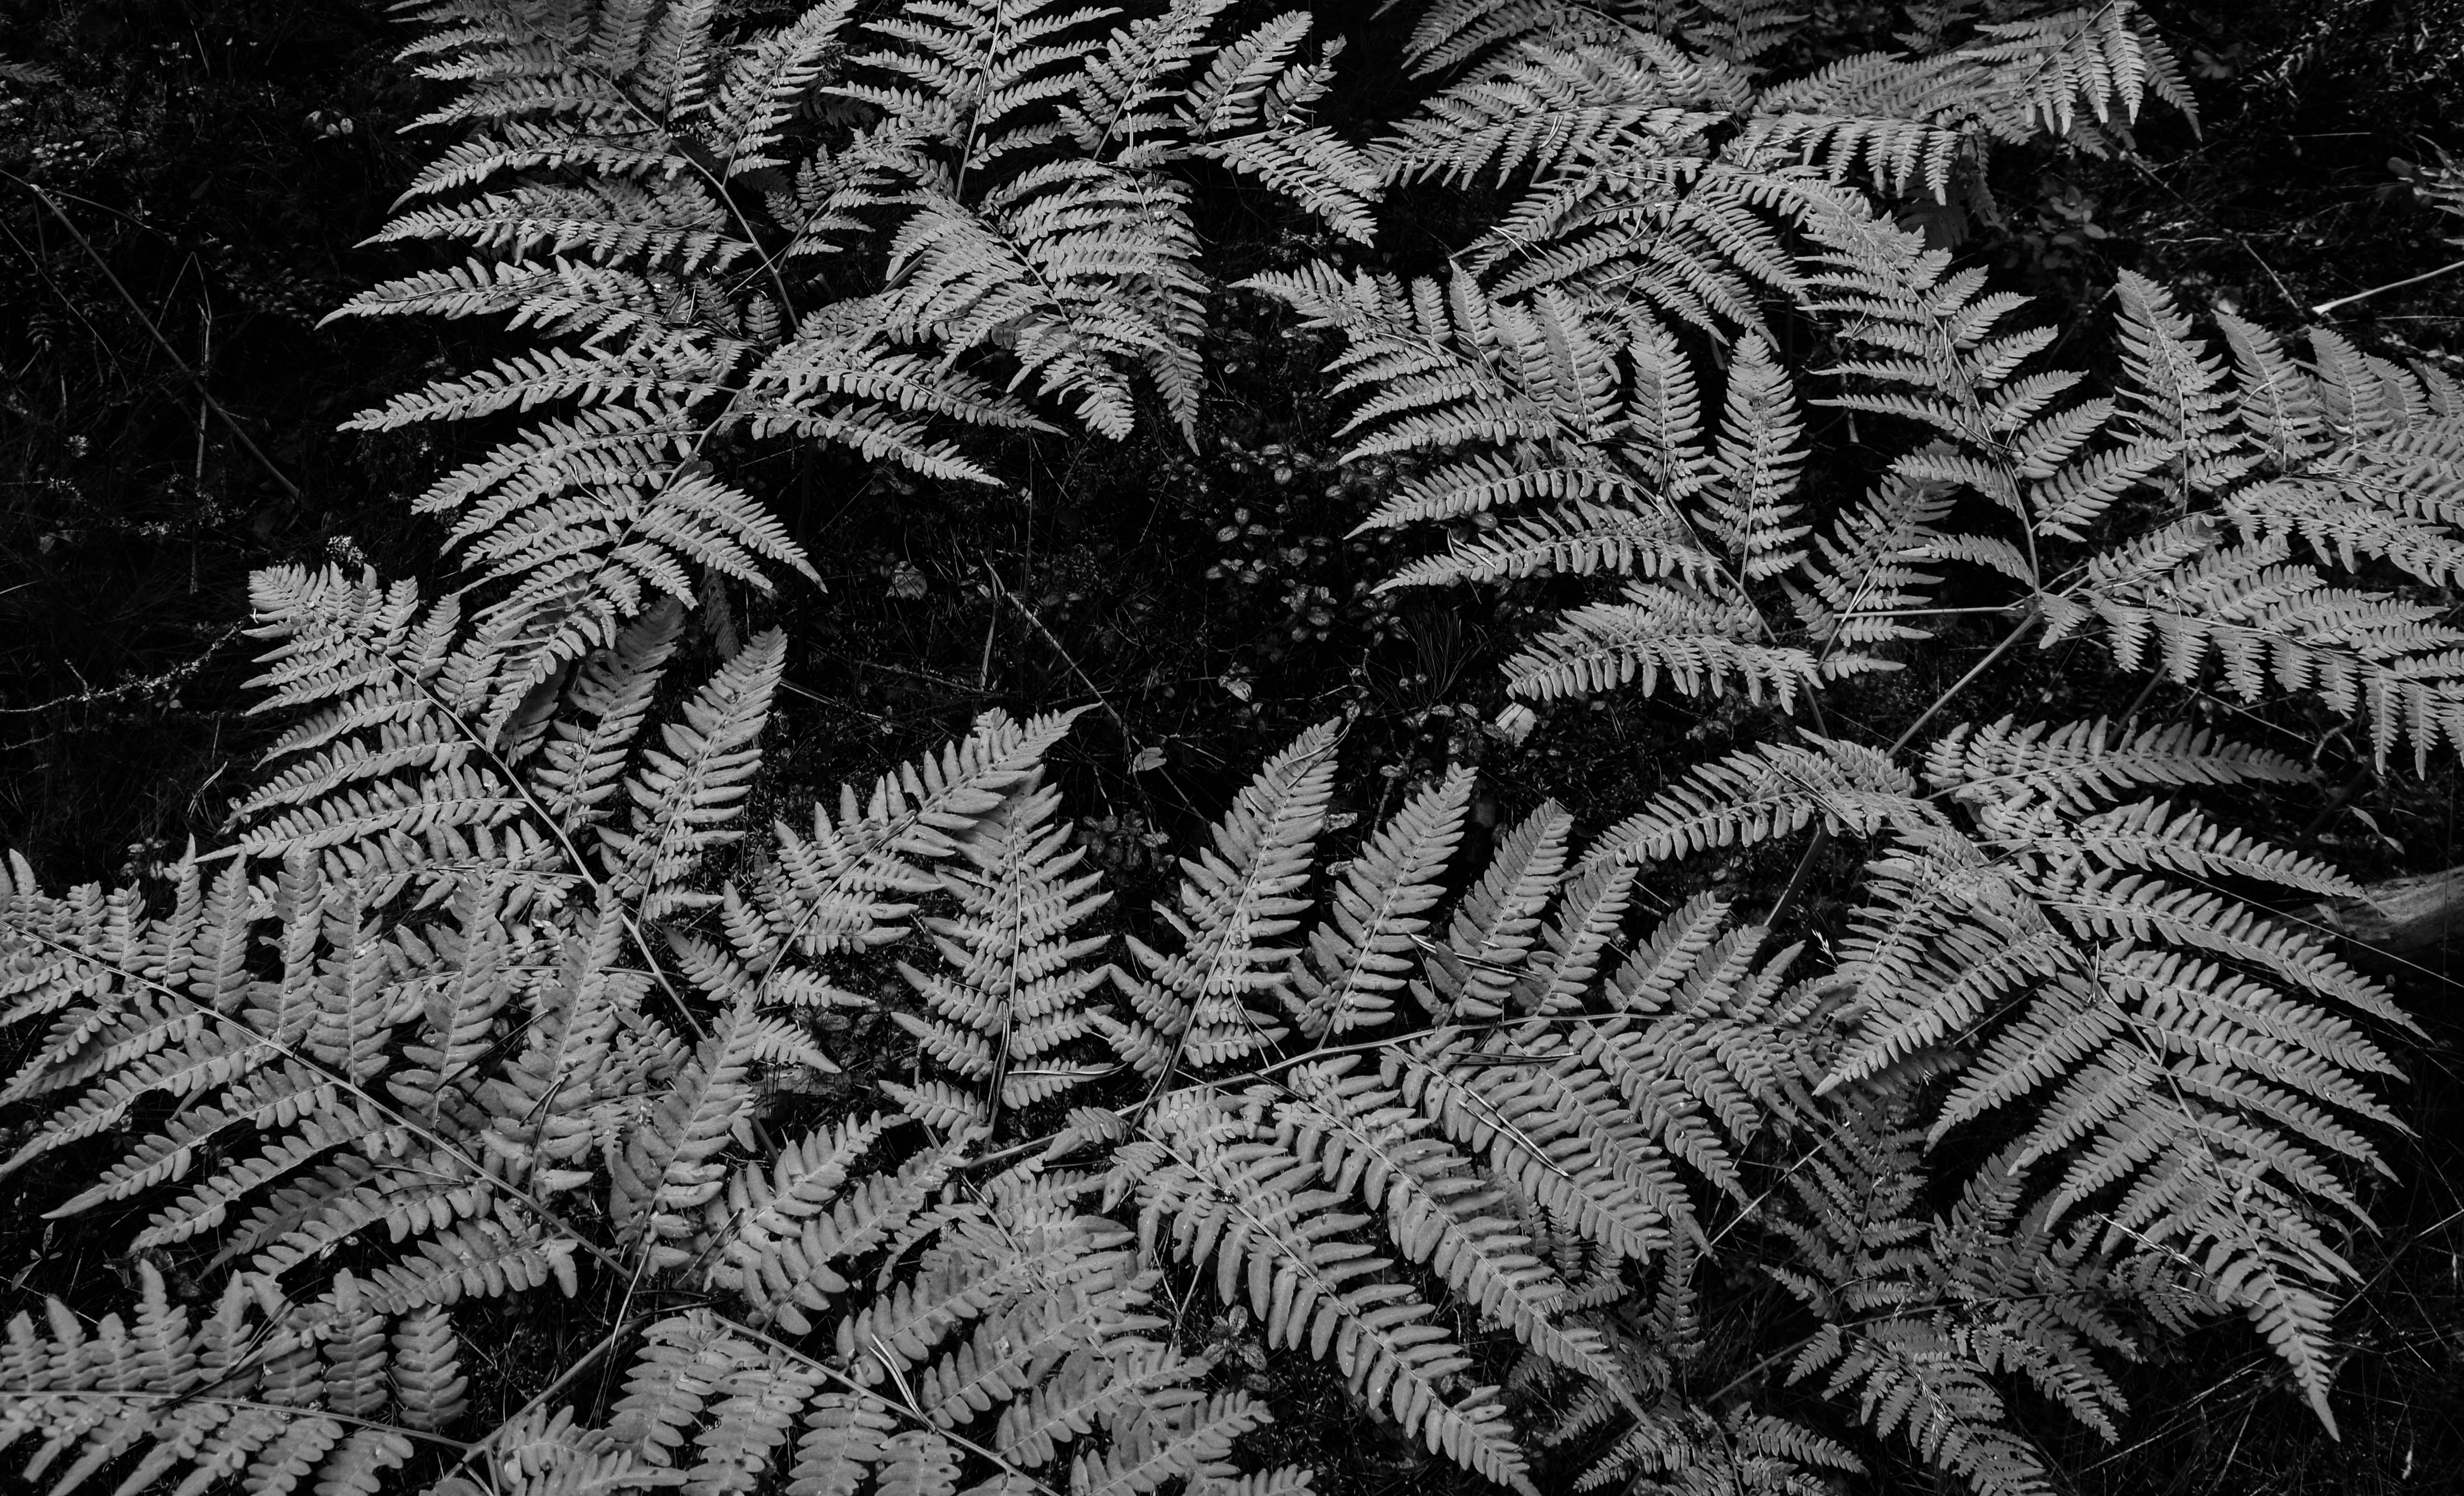 Grayscale Photo Of Fern Plants